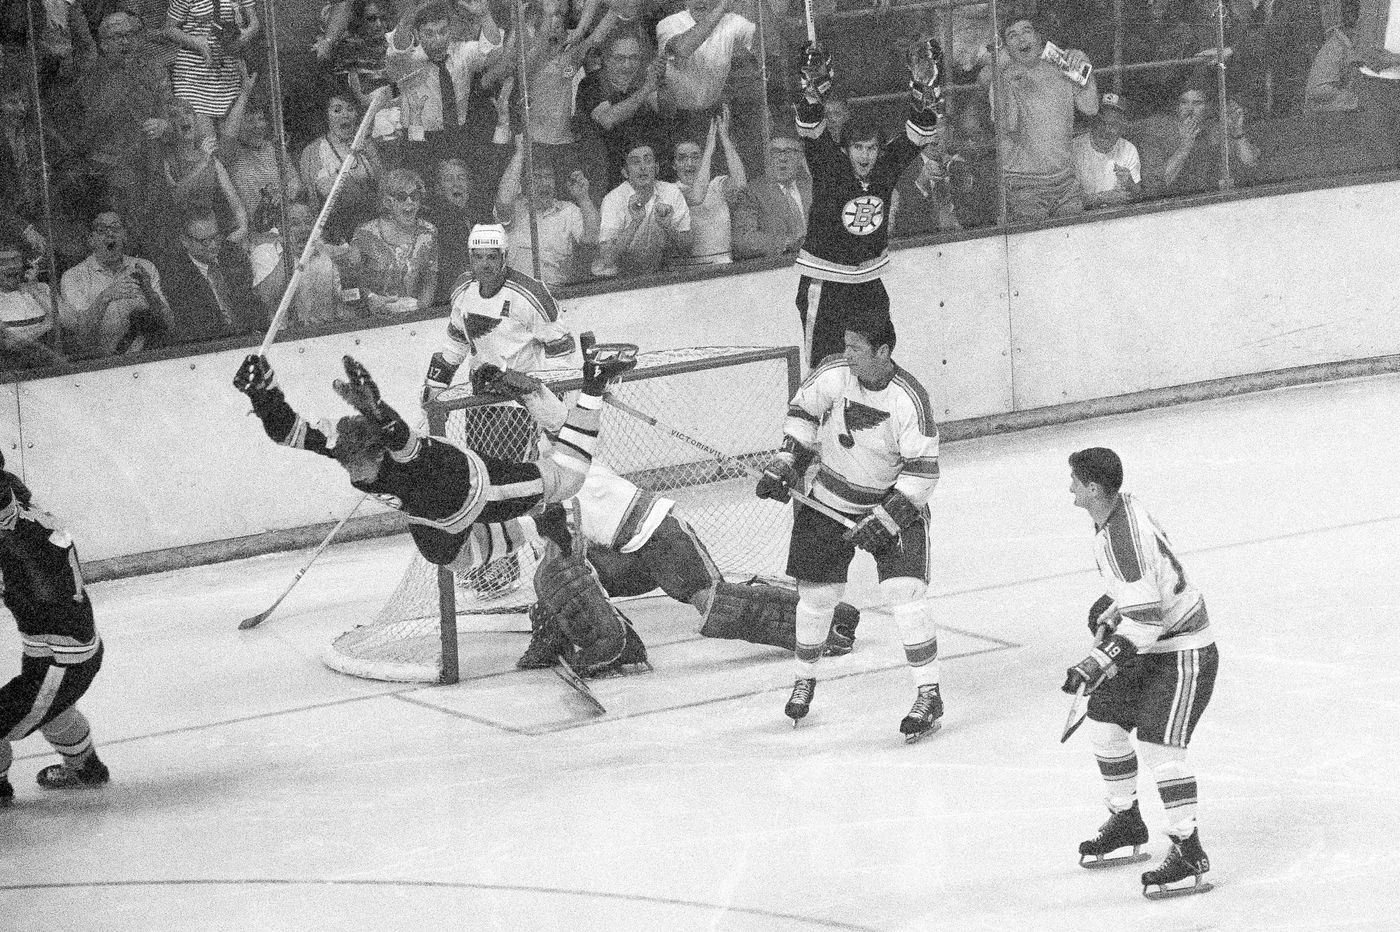 49 years ago, Bobby Orr's iconic goal for the Bruins almost killed ...